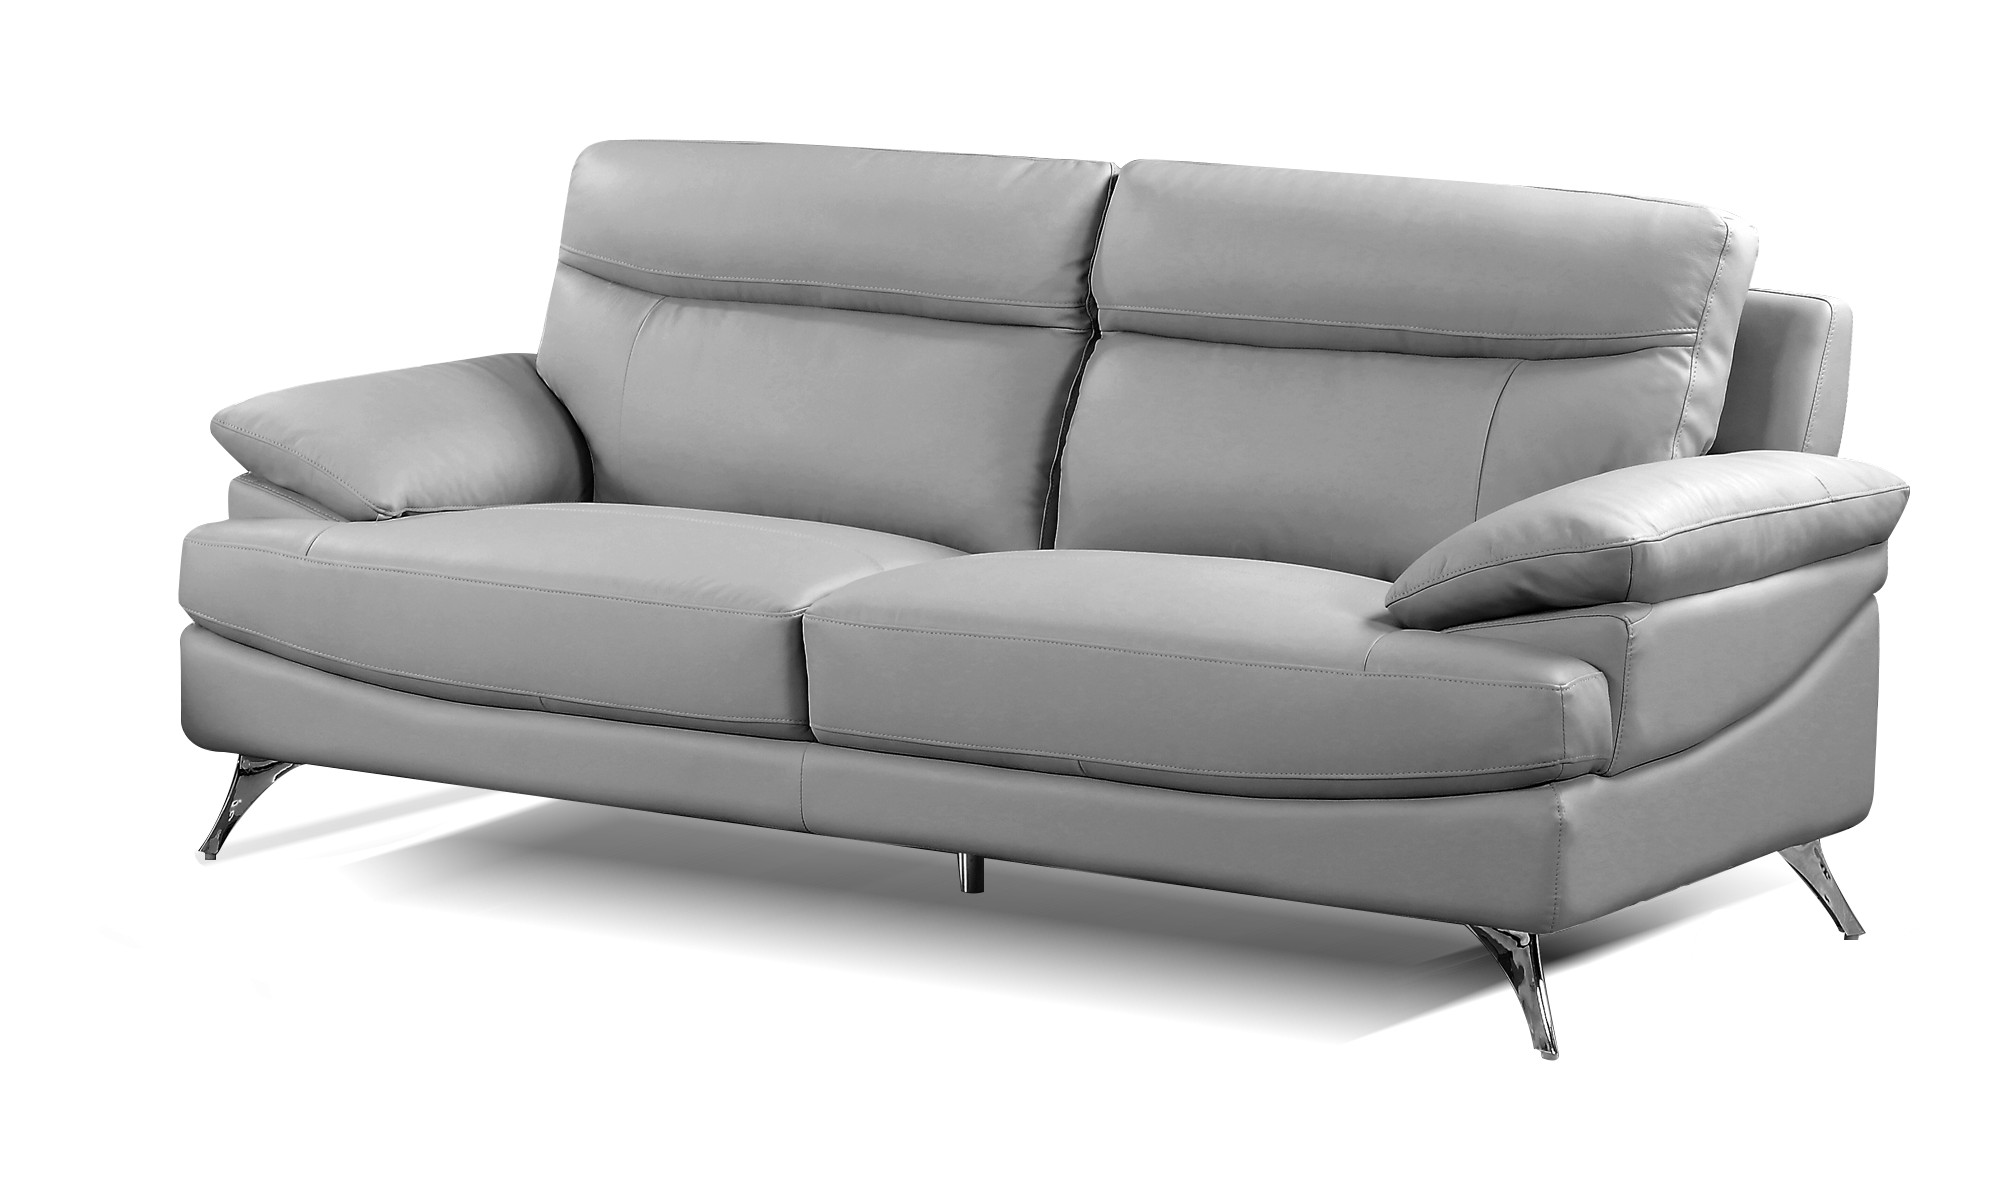 Best Quality Furniture Leather-M Sofa Multiple Colors ...